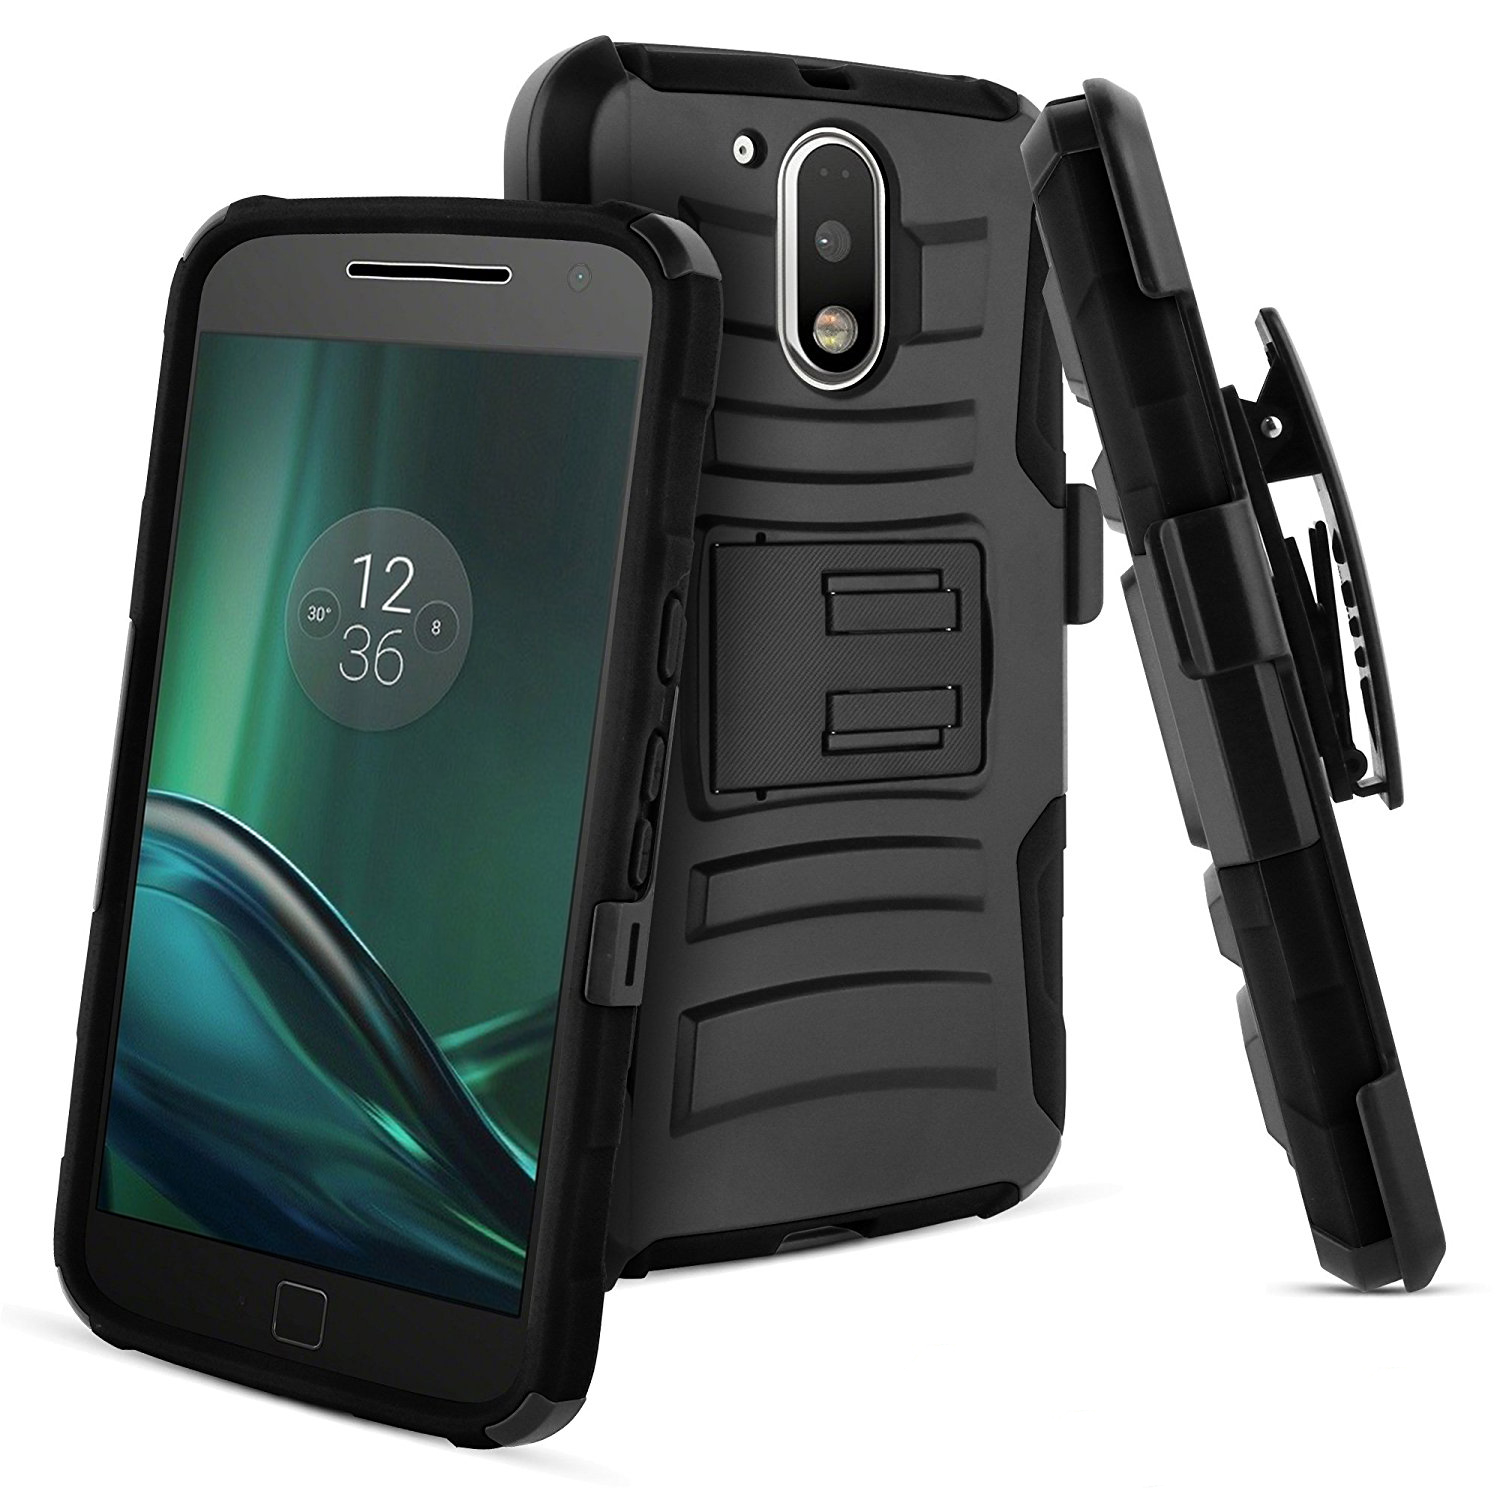 Motorola Moto G4 Play Case, Dual Layer Hard Case w/ Kickstand on Silicone Skin Case w/ Holster [Black] with Travel Wallet Phone Stand